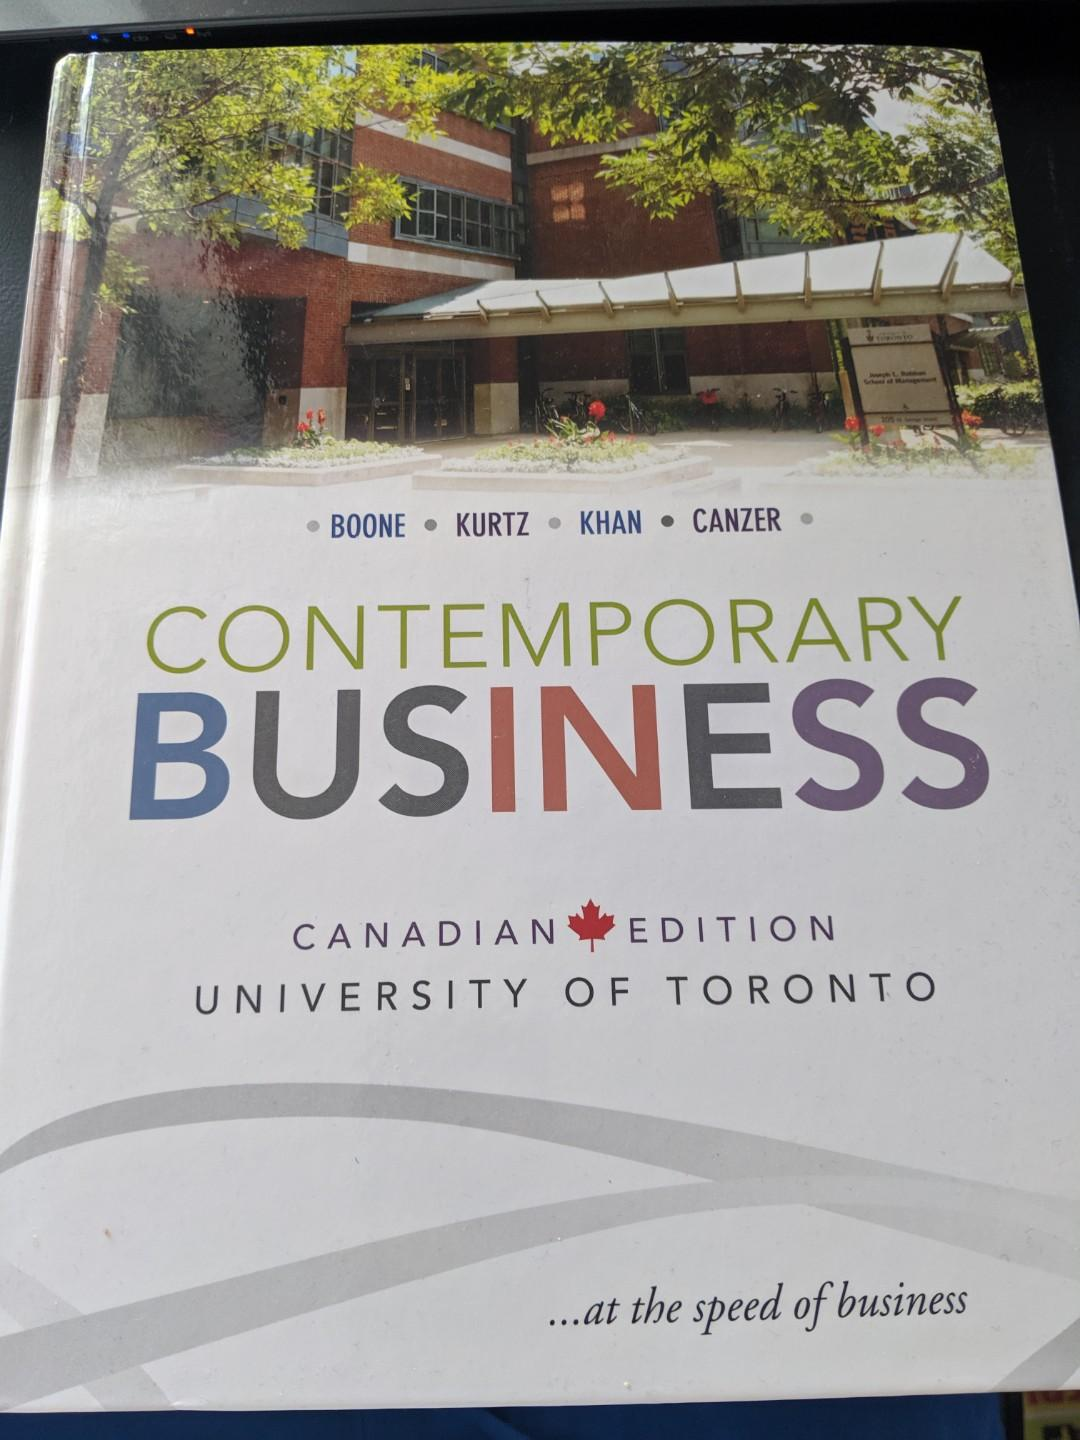 Contemporary Business Canadian Edition. Boone,Kurtz,Khan and Canzer